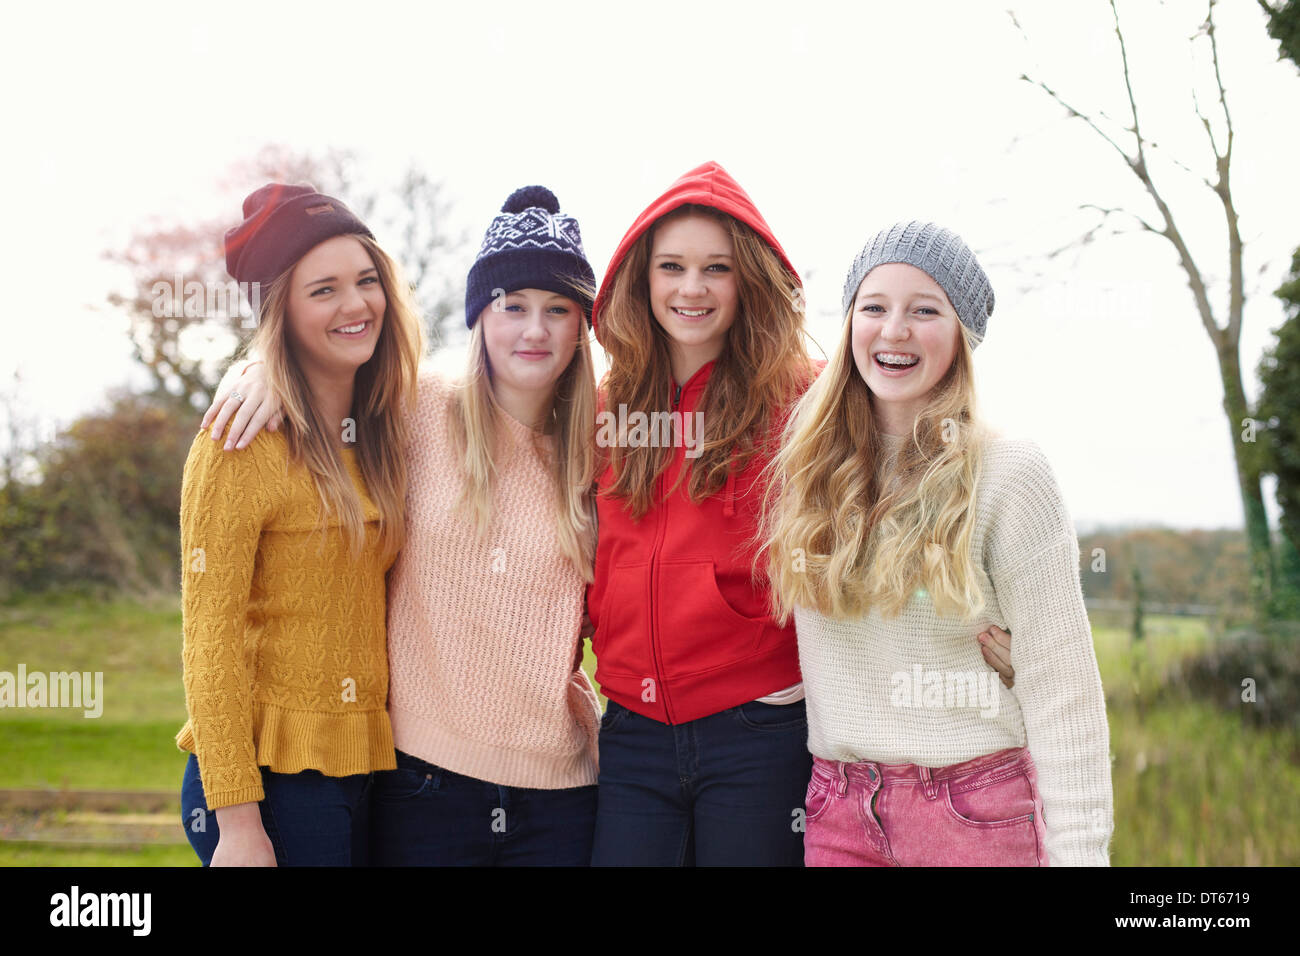 Portrait of four teenage girls in knitted hats - Stock Image